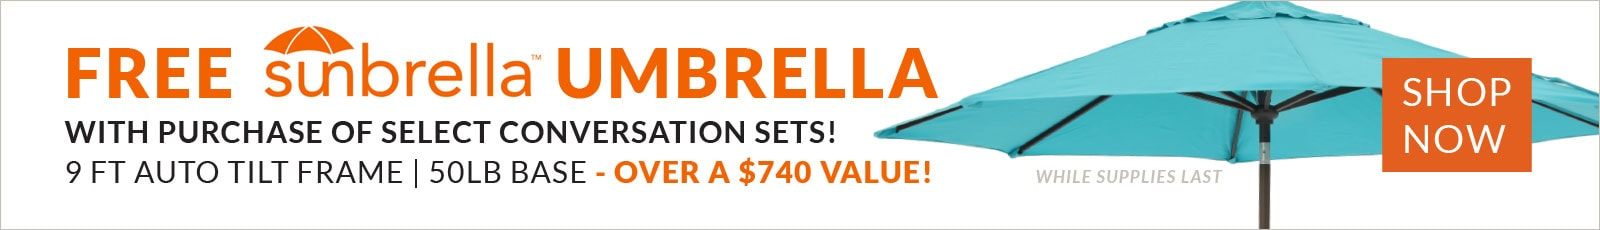 Free Umbrella with Purchase of Select Conversation Sets